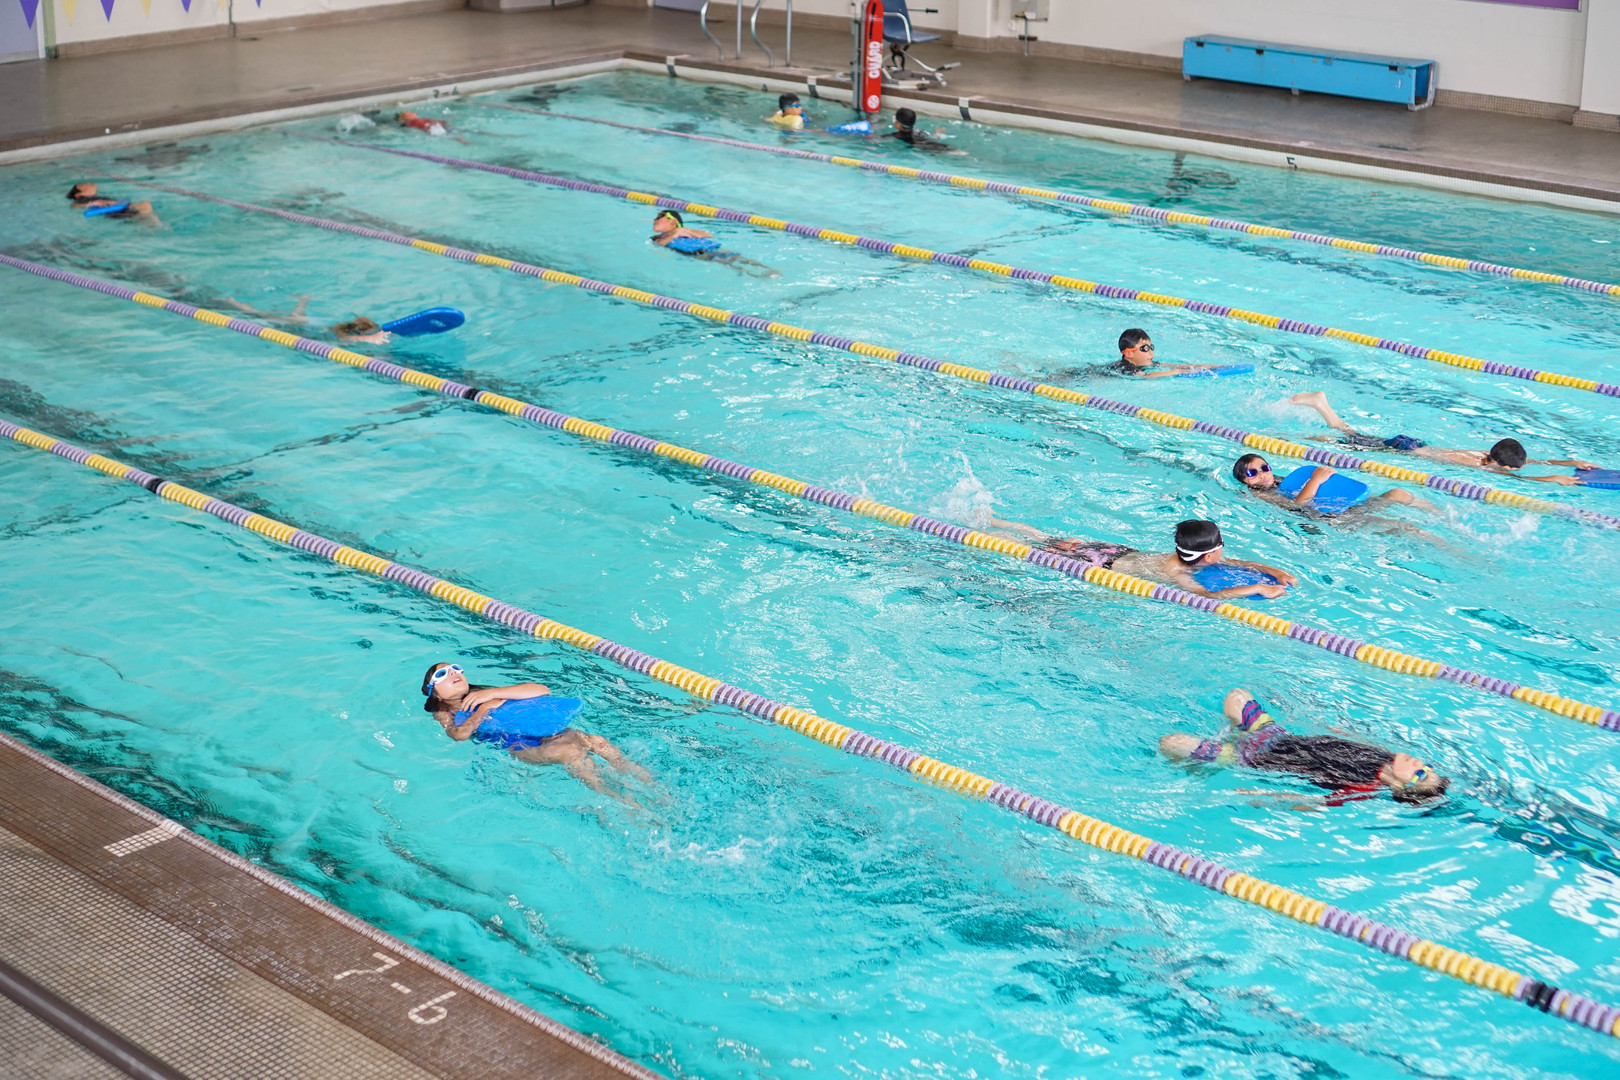 Our kids practicing swim kicks